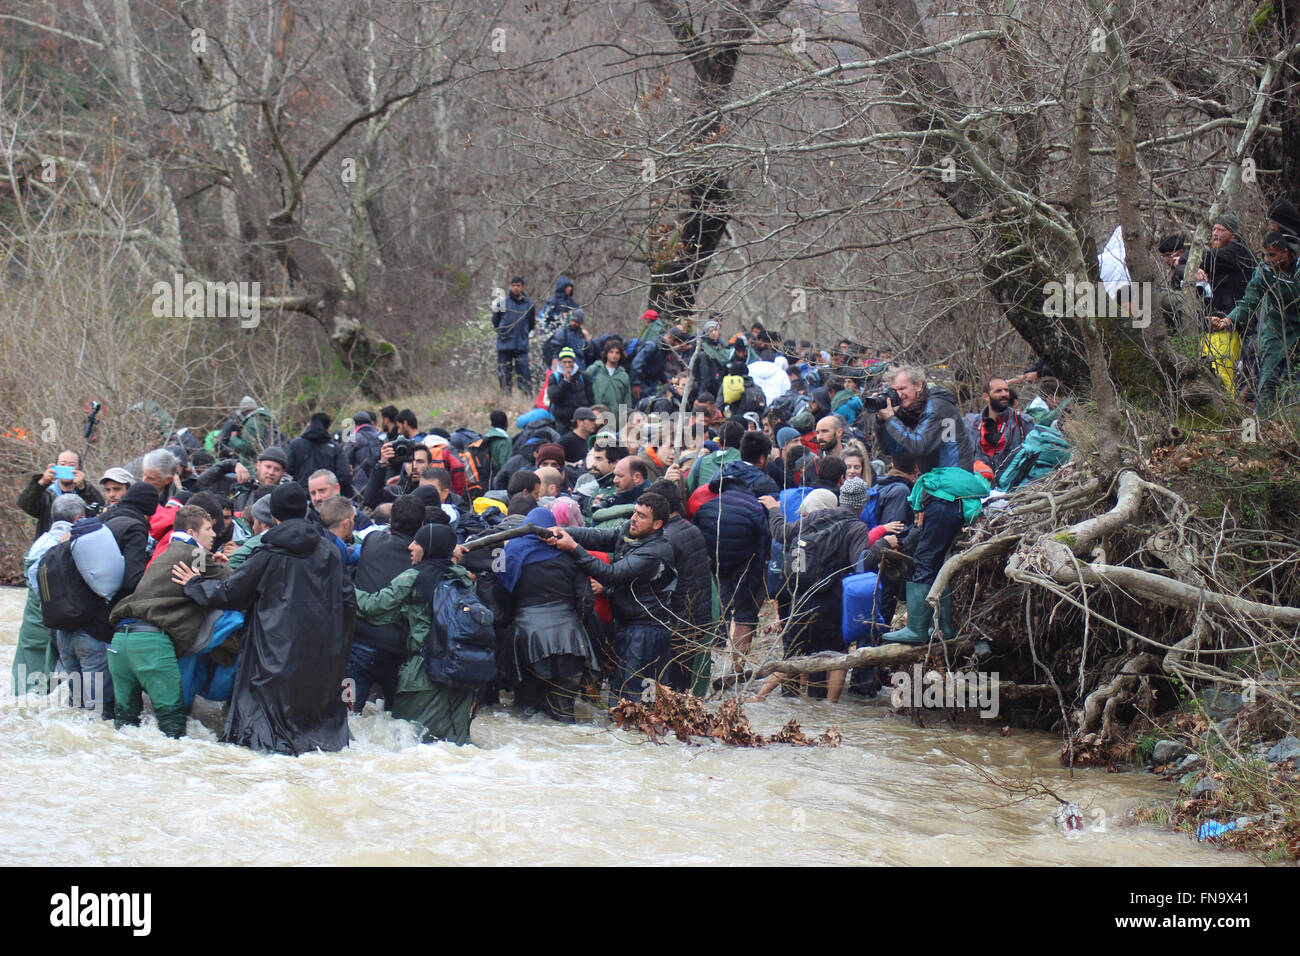 Refugees crossing a stream that became a torrent due to the rain in the past days, Chamilo, Greece, 14 March 2016. - Stock Image